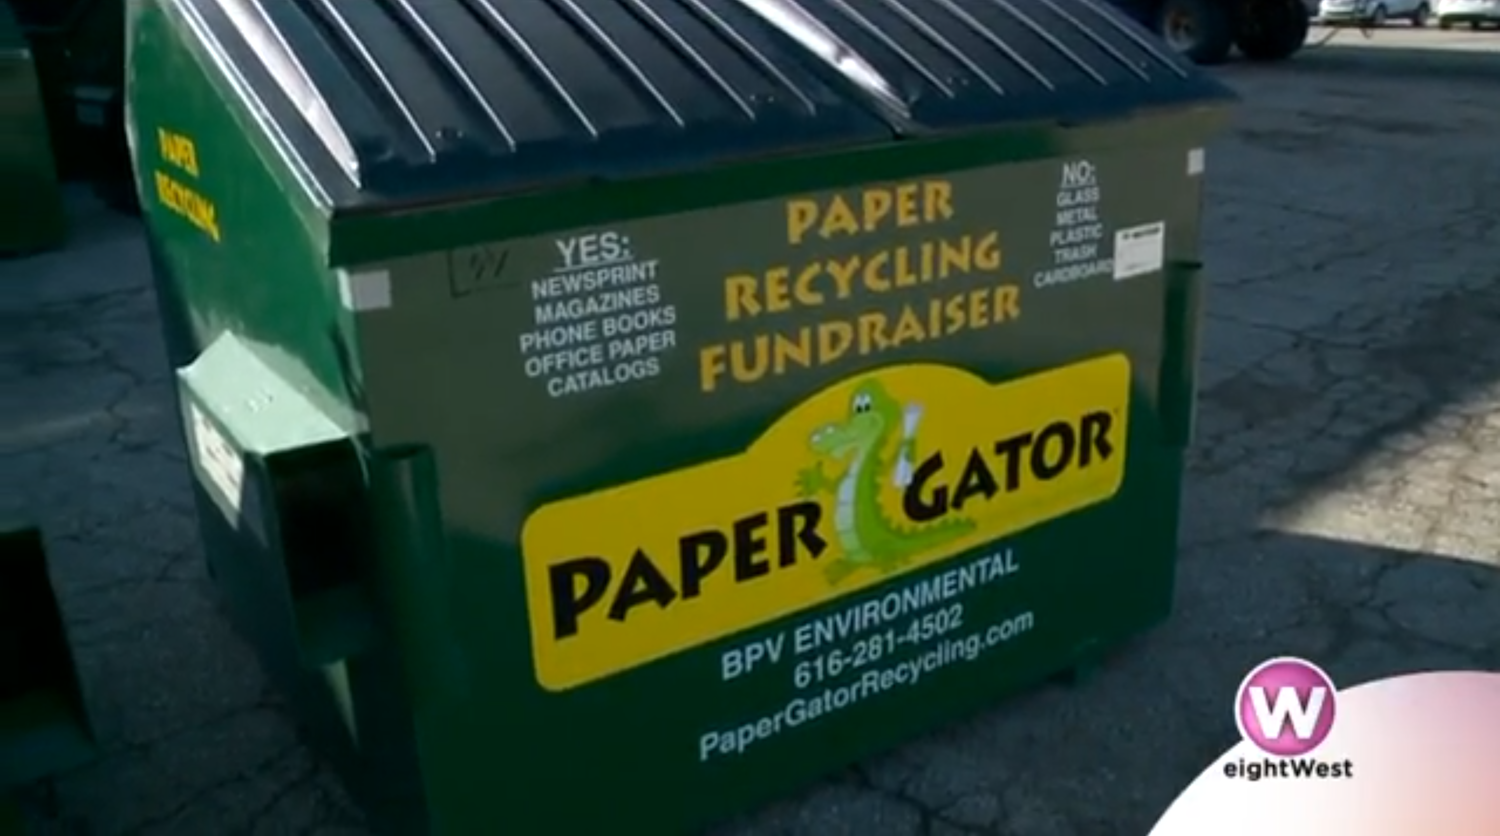 Green and Yellow Paper Gator Recycling Bin